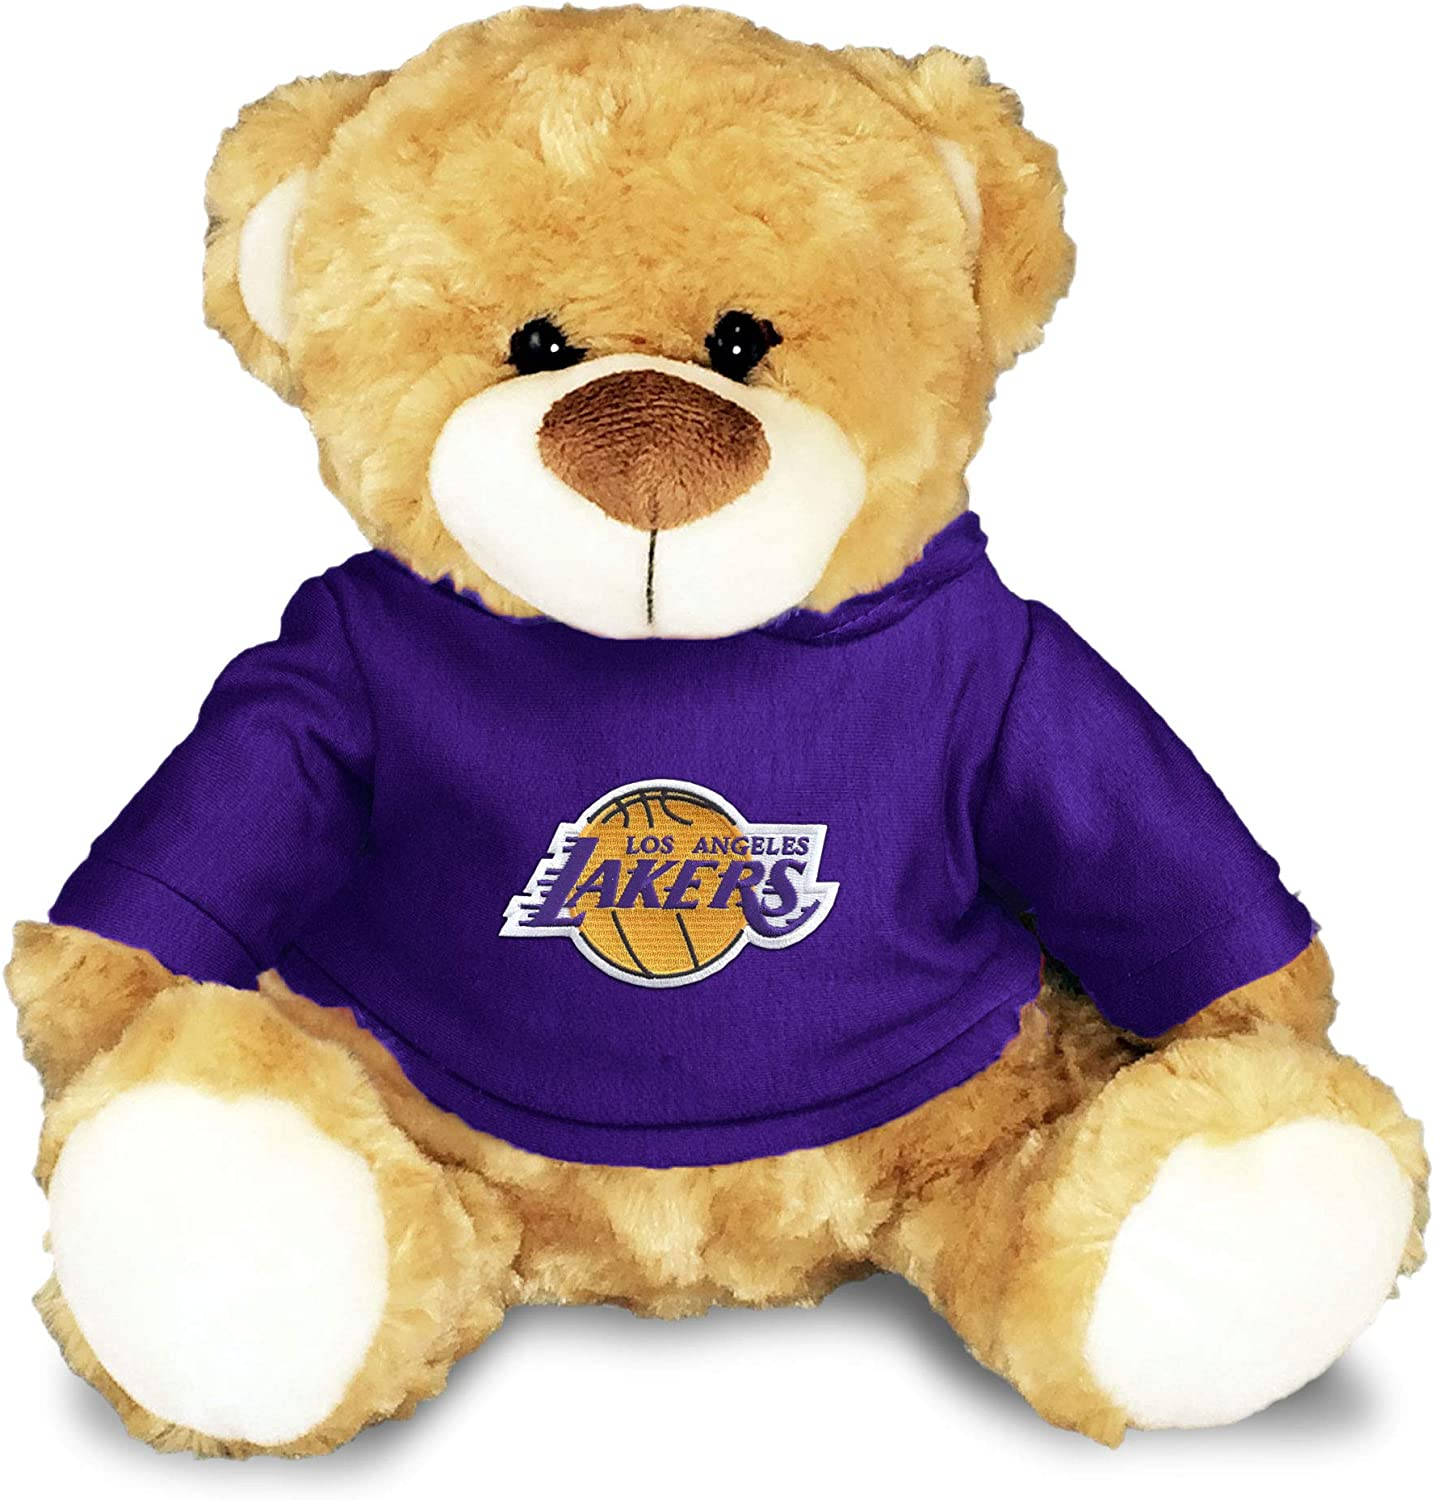 Los Angeles Lakers Baby Plush Bear - Personalized Teddy Bear with Baby Name Embroidery and Official NBA Logos, 100% Polyester, Removable Hooded ...